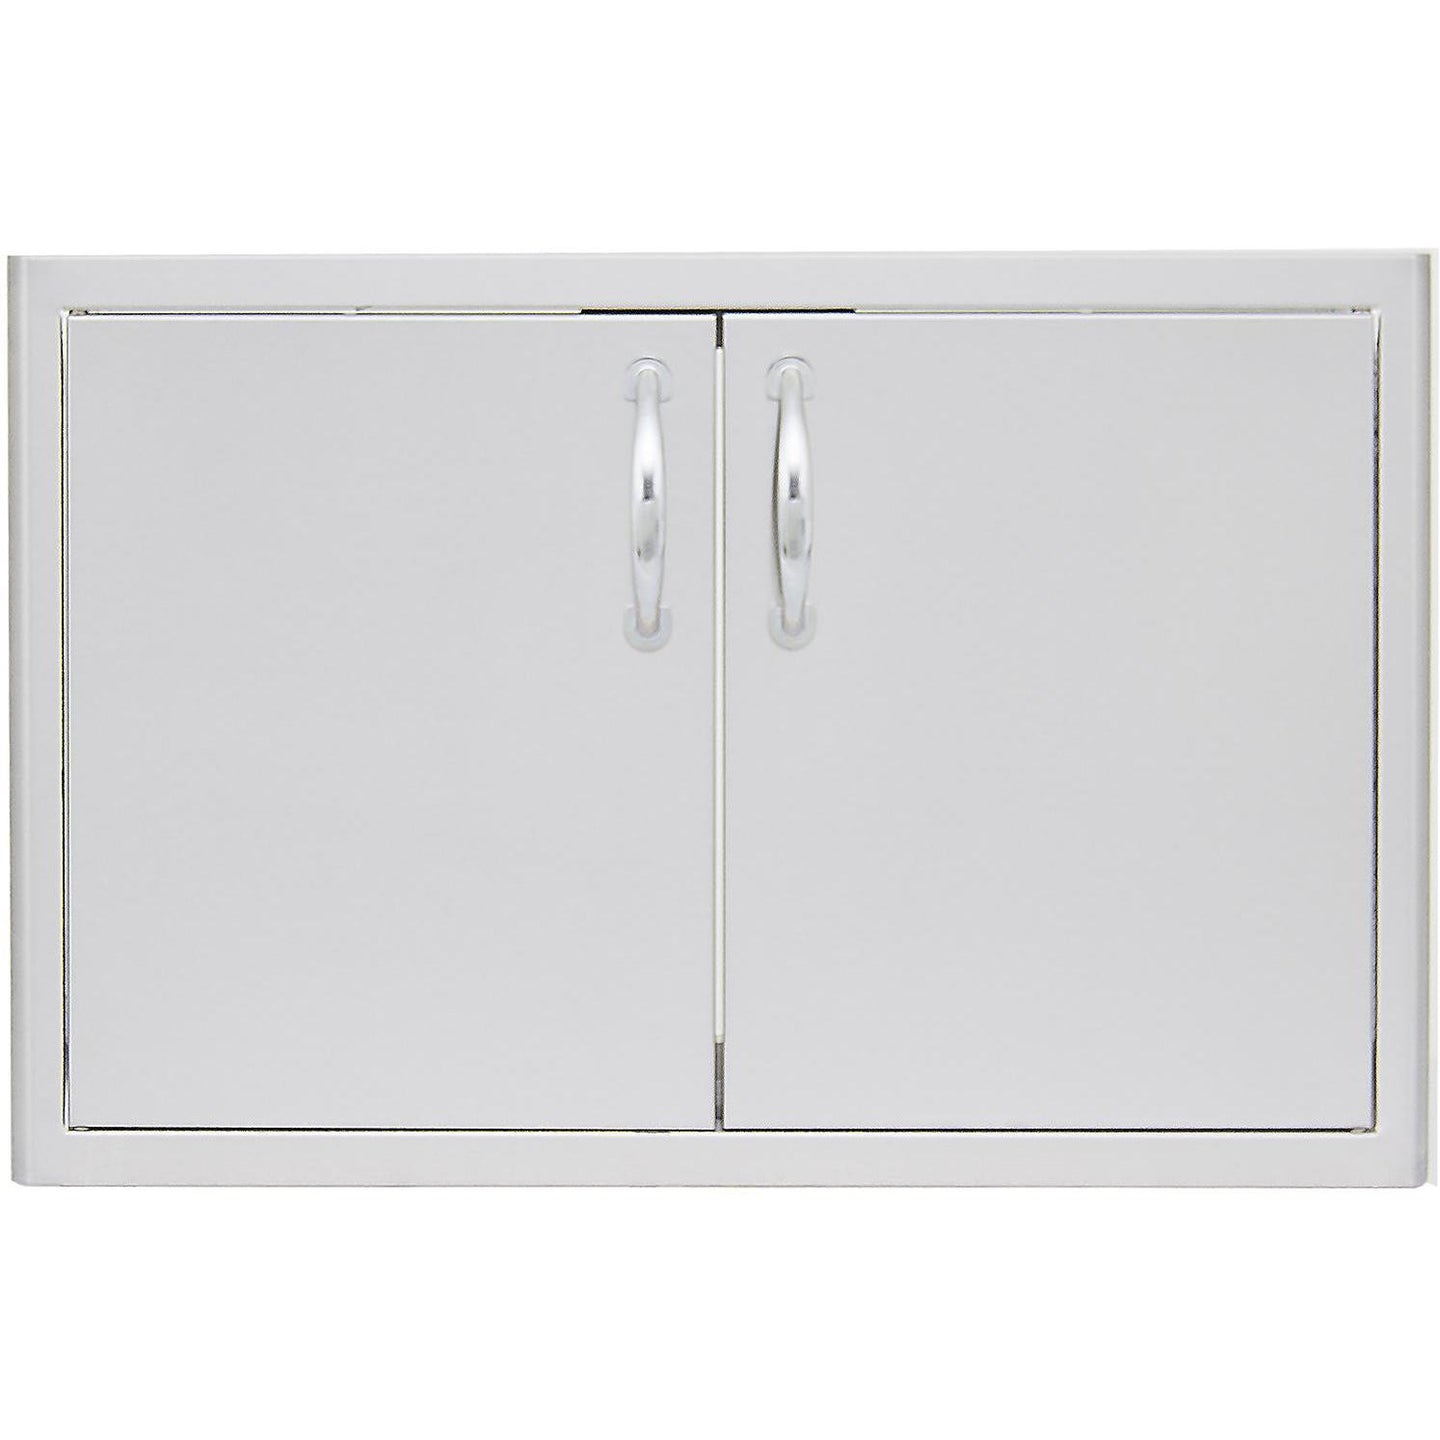 Blaze 32-Inch Double Access Door With Paper Towel Holder - BLZ-AD32-R